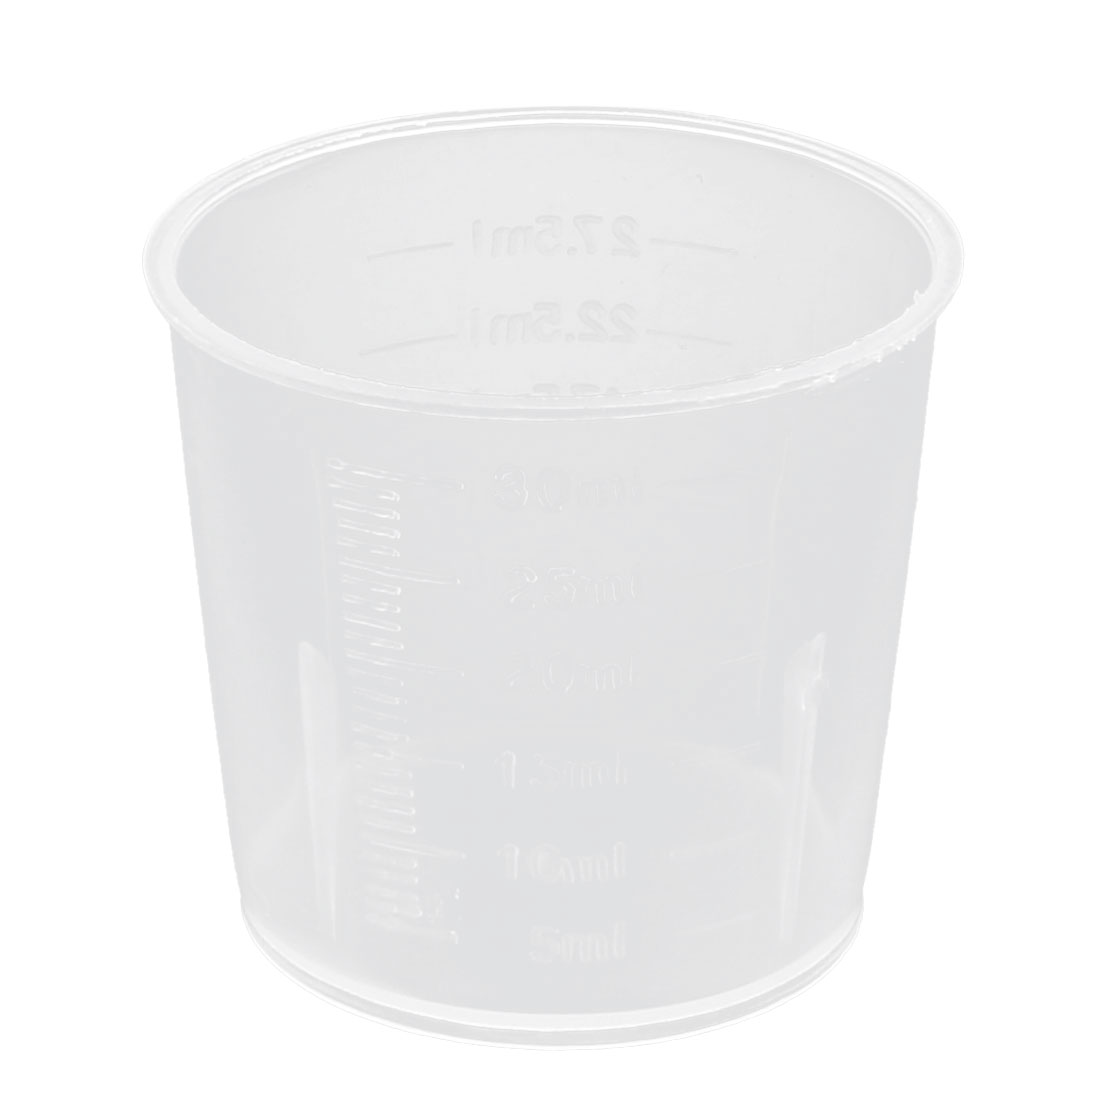 30mL Laboratory Plastic PP Liquid Container Measuring Cup Beaker Thicken Clear